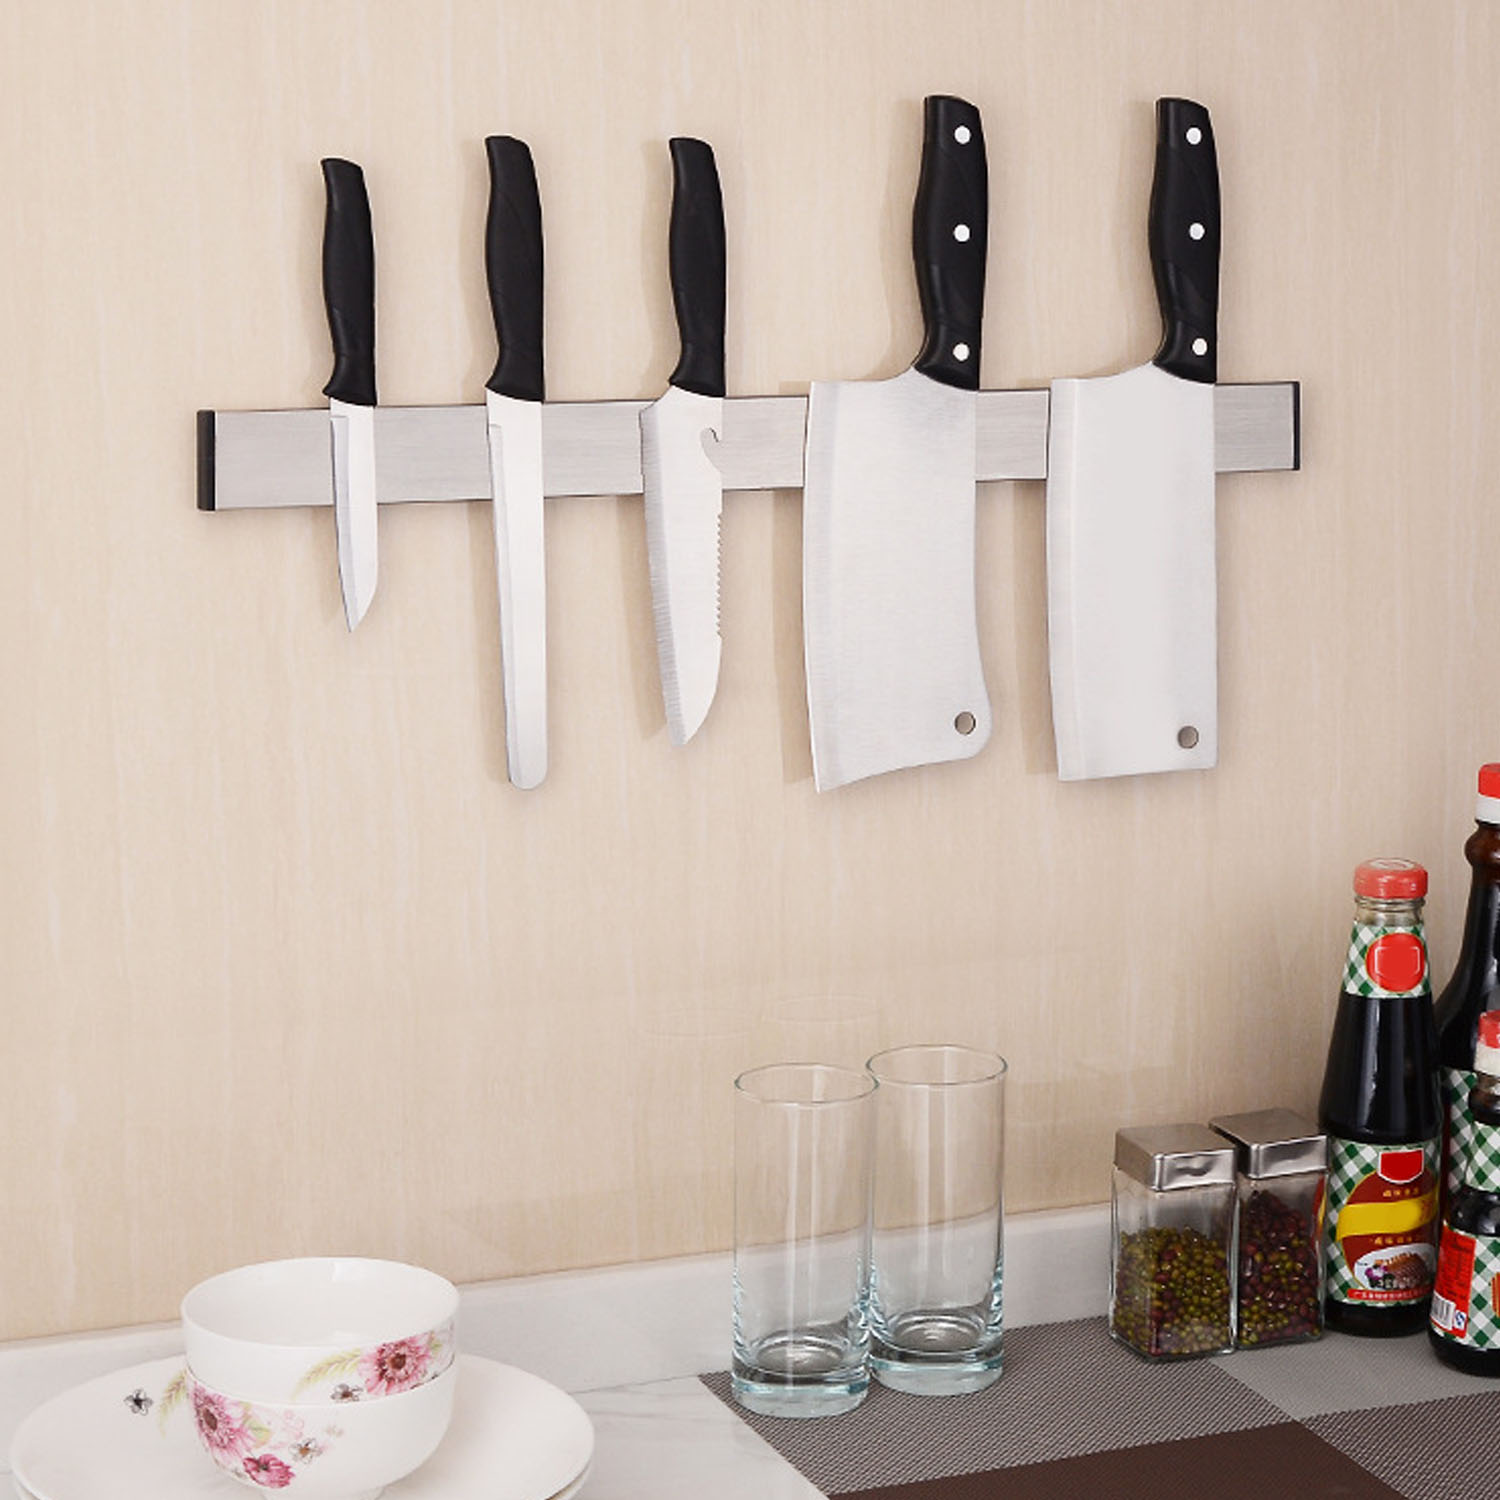 Magnetic Self-adhesive 31/41/51CM Length Knifes Holder Stainless Steel Block Magnet Knife Holder Rack Stand For Knifes